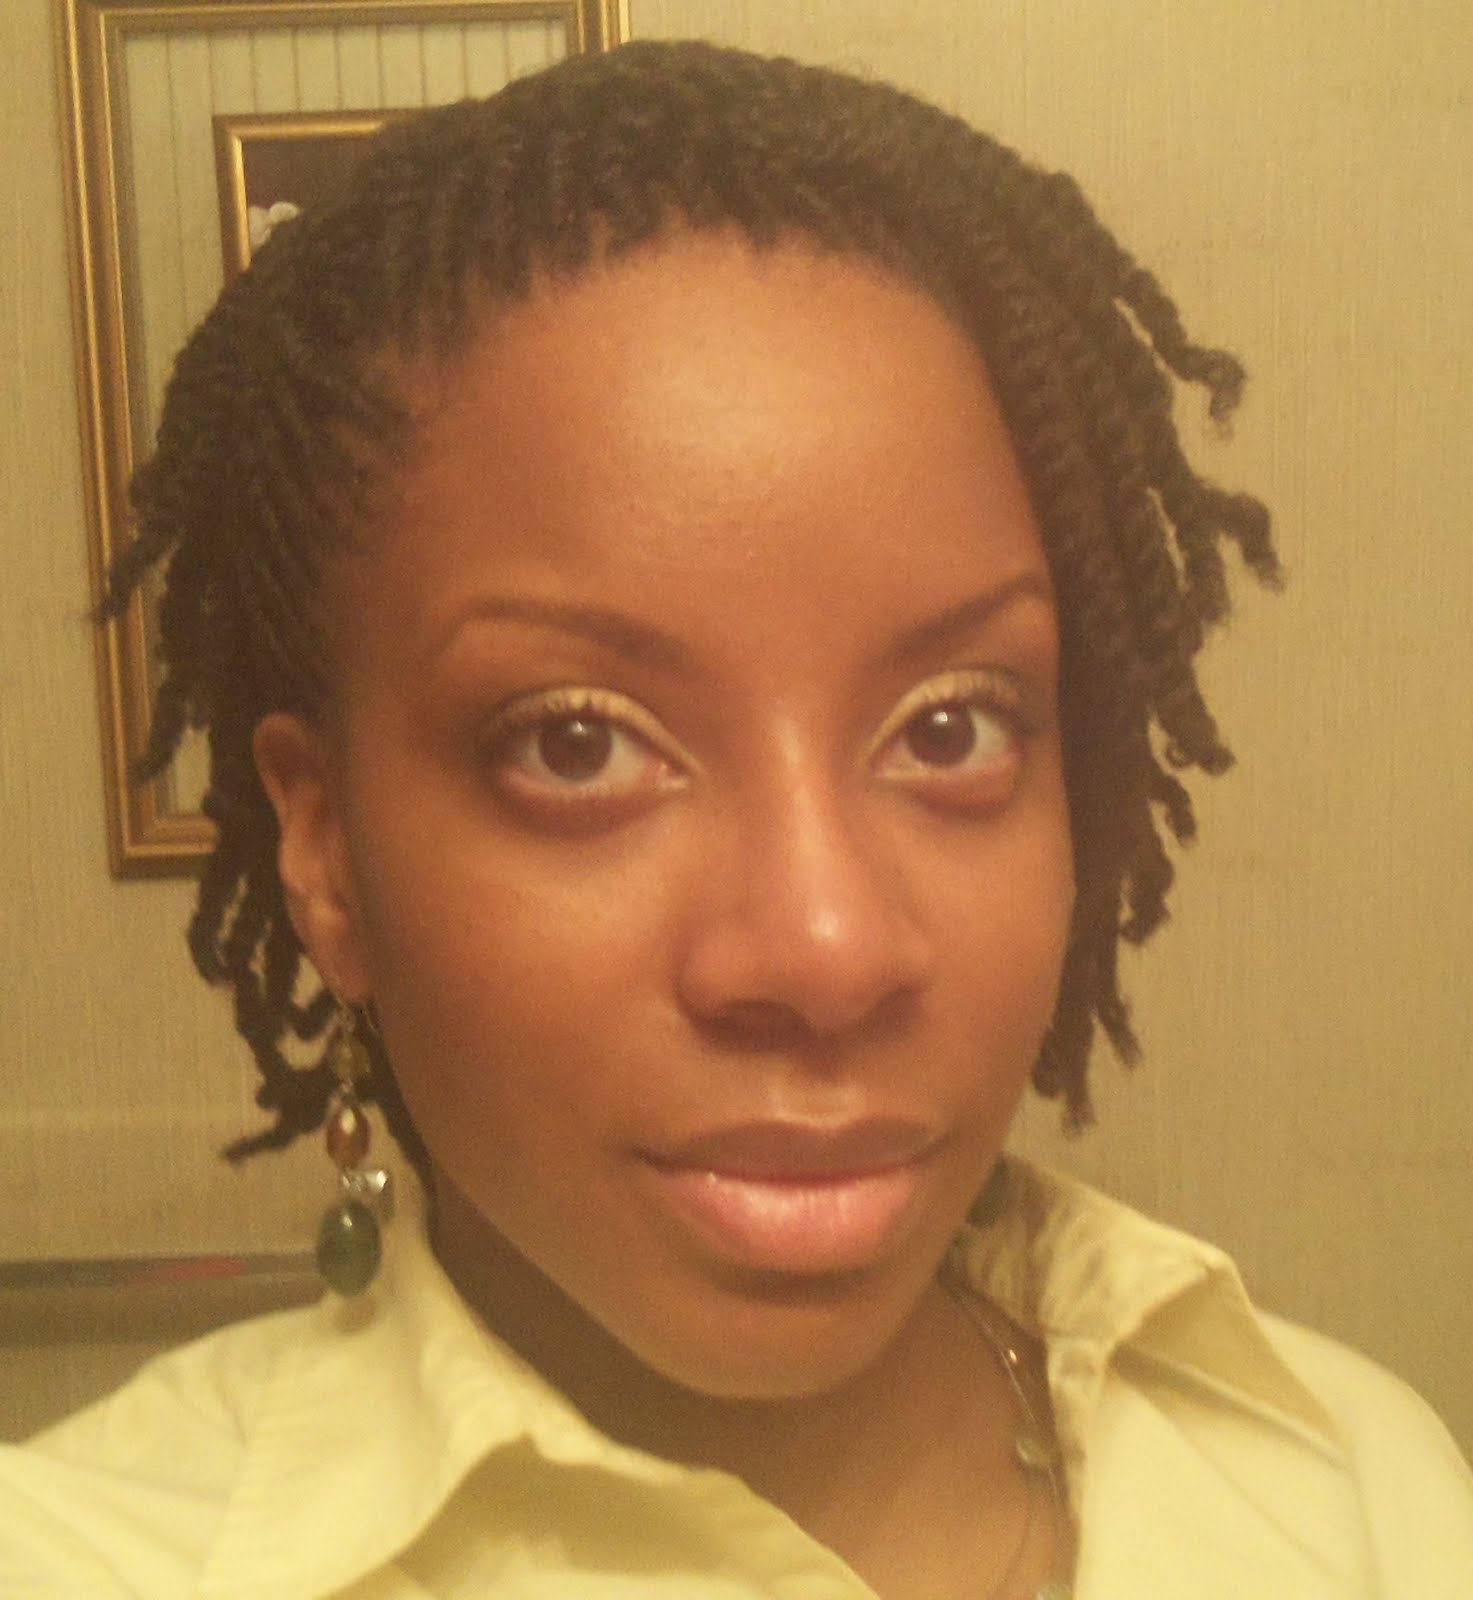 Prime Keke52284 Conquering Natural Hair One Kink At A Time Short Hairstyles For Black Women Fulllsitofus